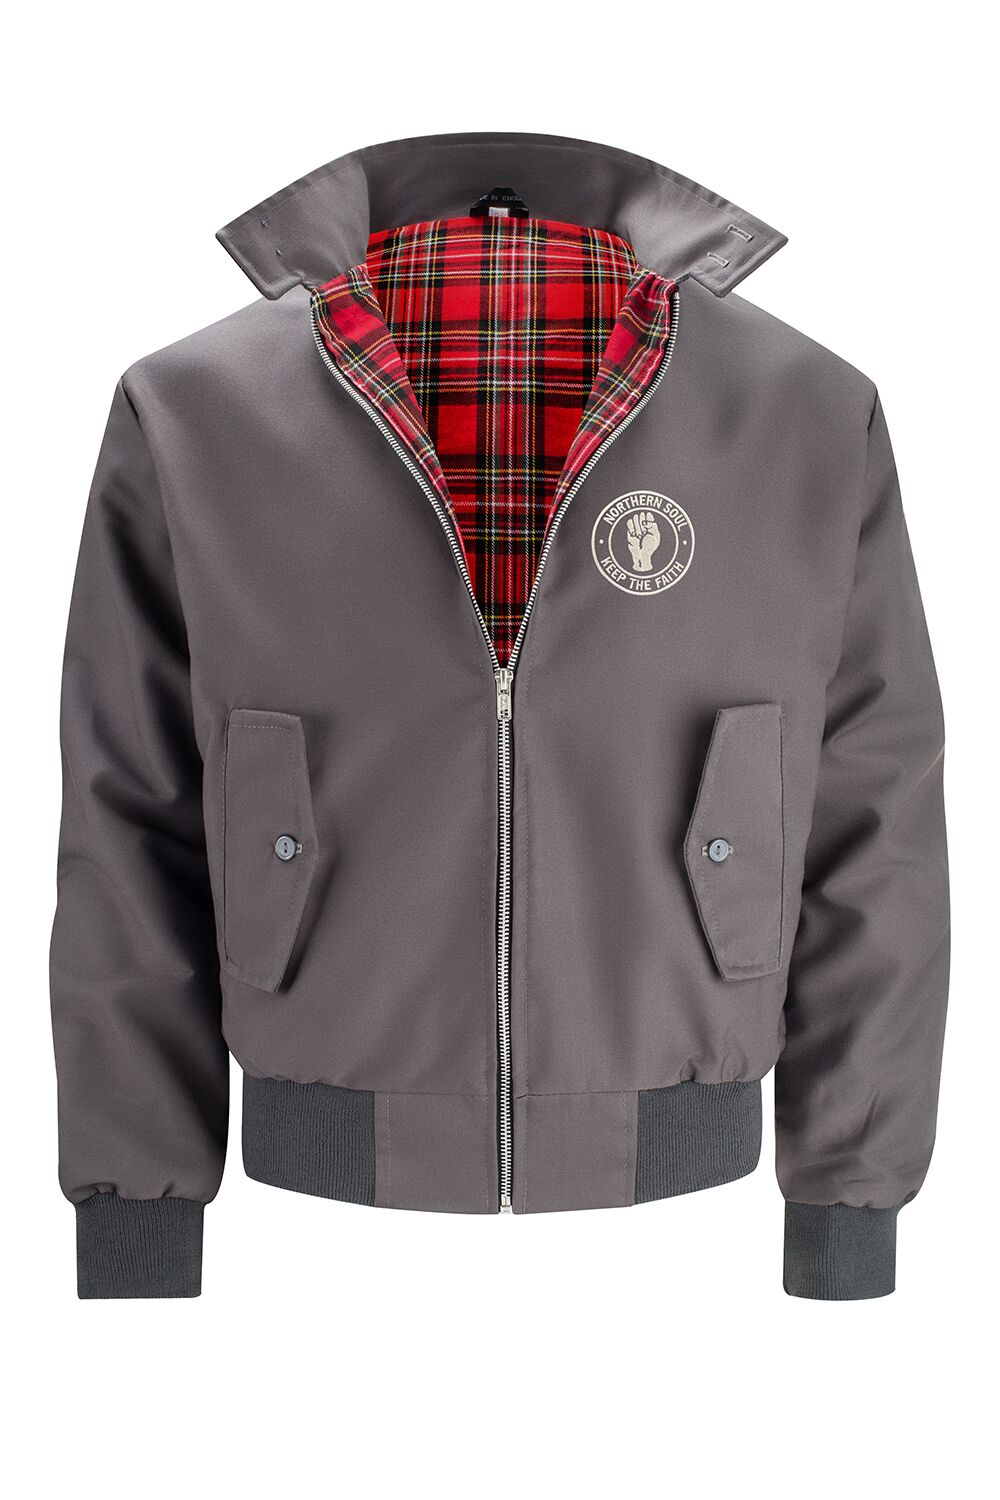 Mens Classic Harrington Jacket - Grey (with Northern Soul badge)